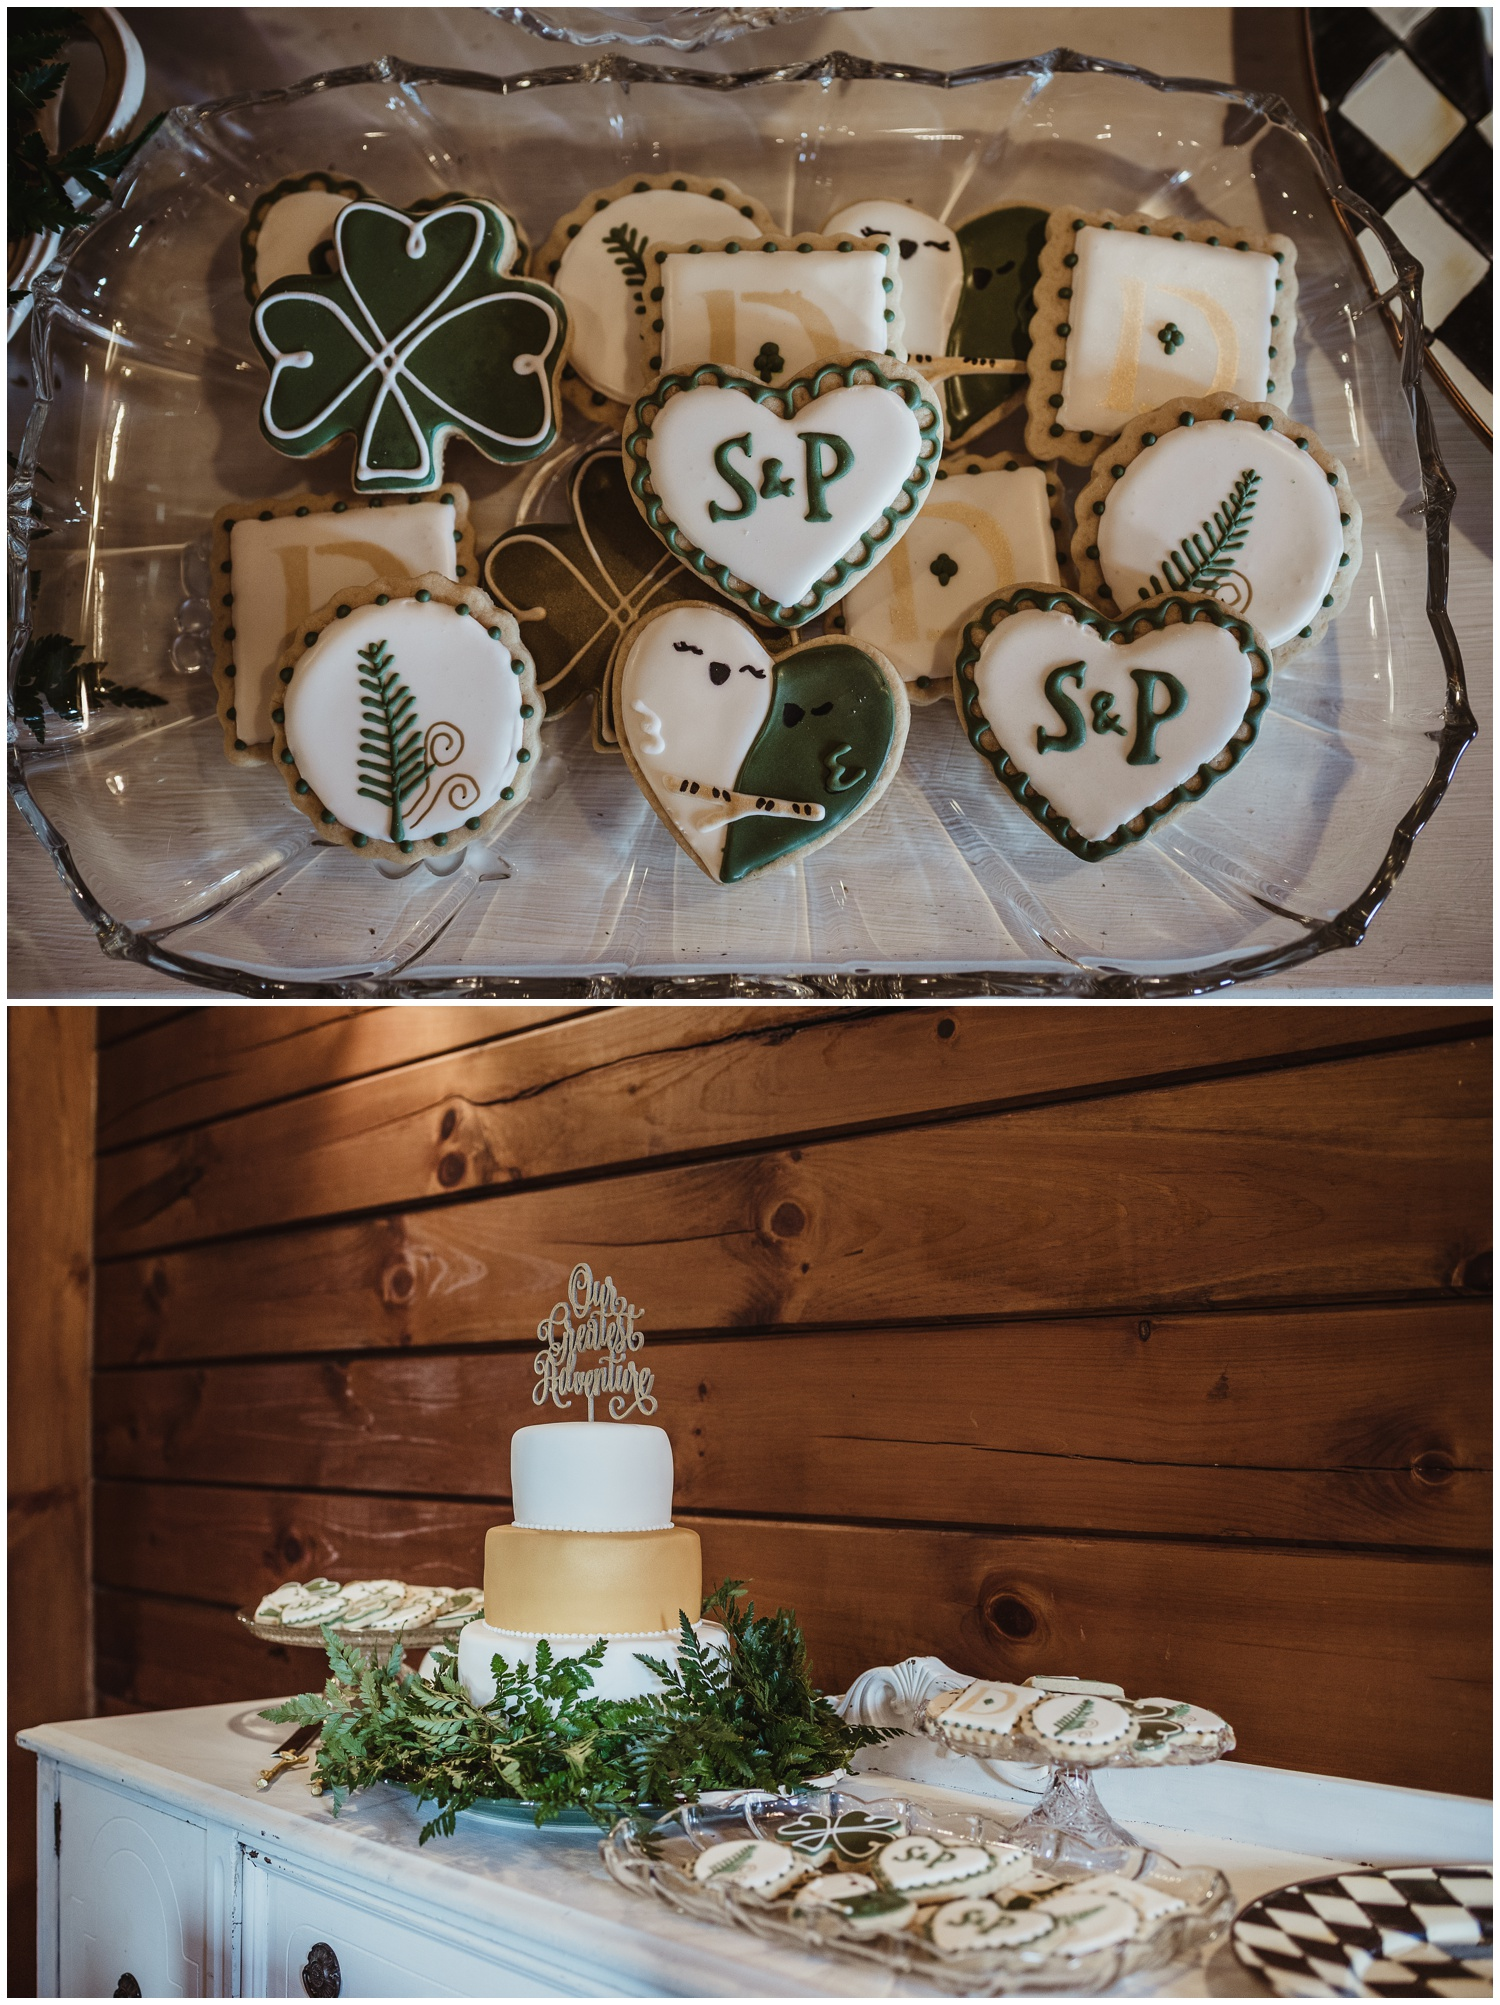 Decorated St. Patrick's Day cookies and the wedding cake are decorated in greenery in the Barn at Valhalla in Chapel Hill, images by Rose Trail Images.